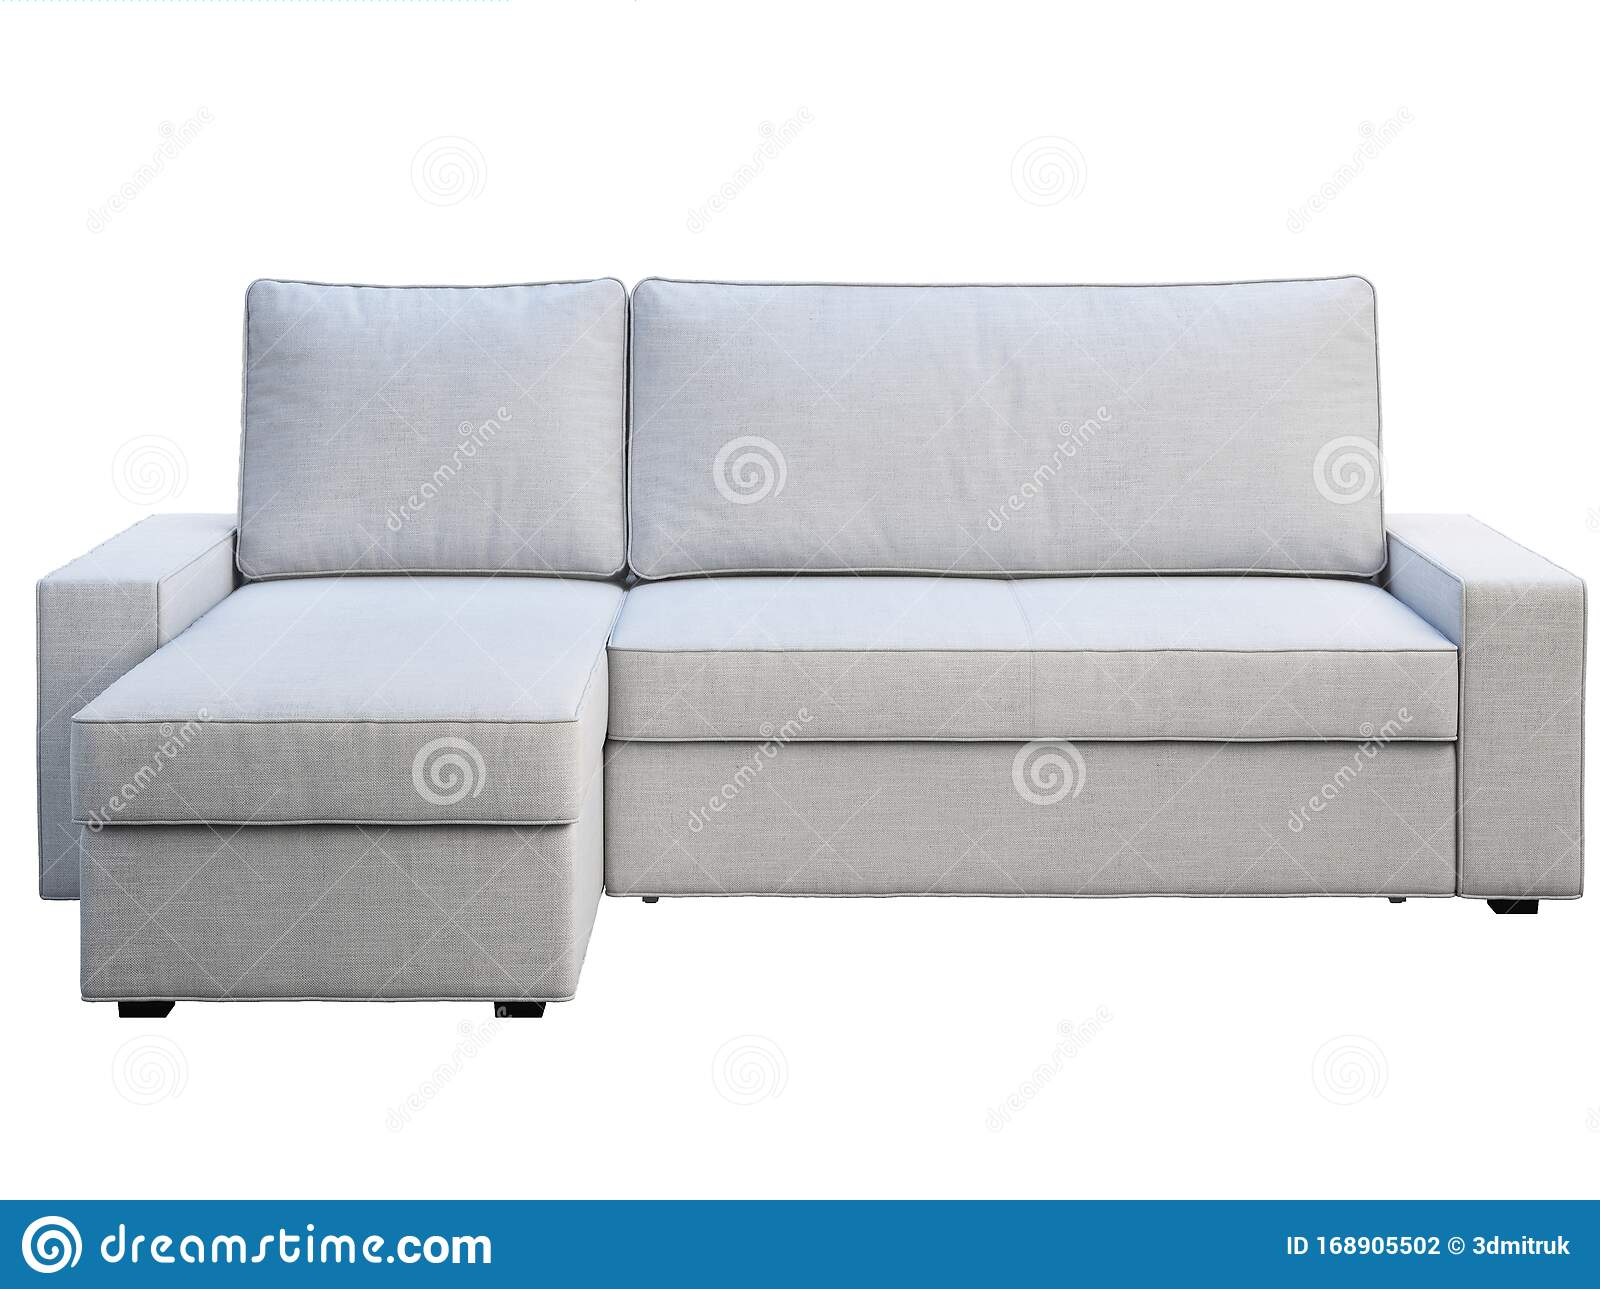 Modern White Fabric Sofa With Chaise Lounge 3d Render Stock Illustration Illustration Of Chaise Lounge 168905502